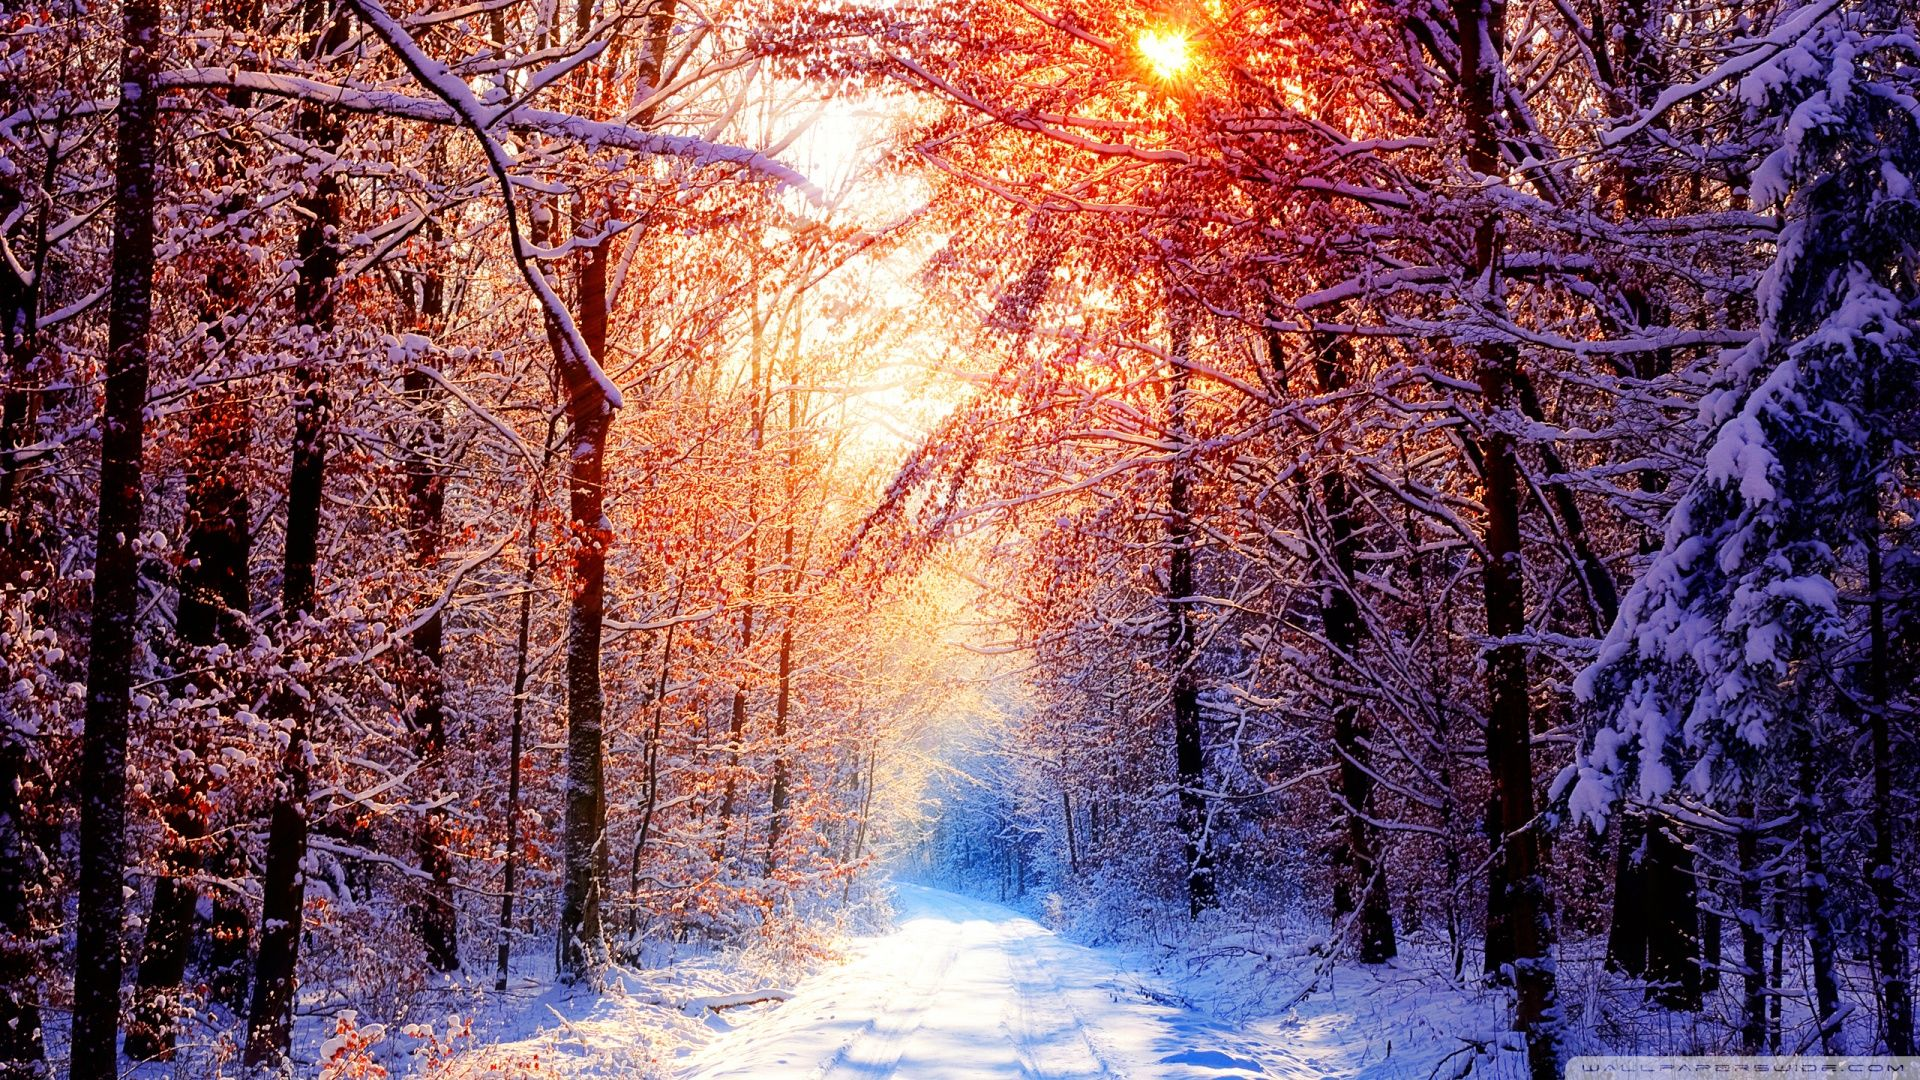 Winter Scenery Wallpapers Top Free Winter Scenery Backgrounds Wallpaperaccess